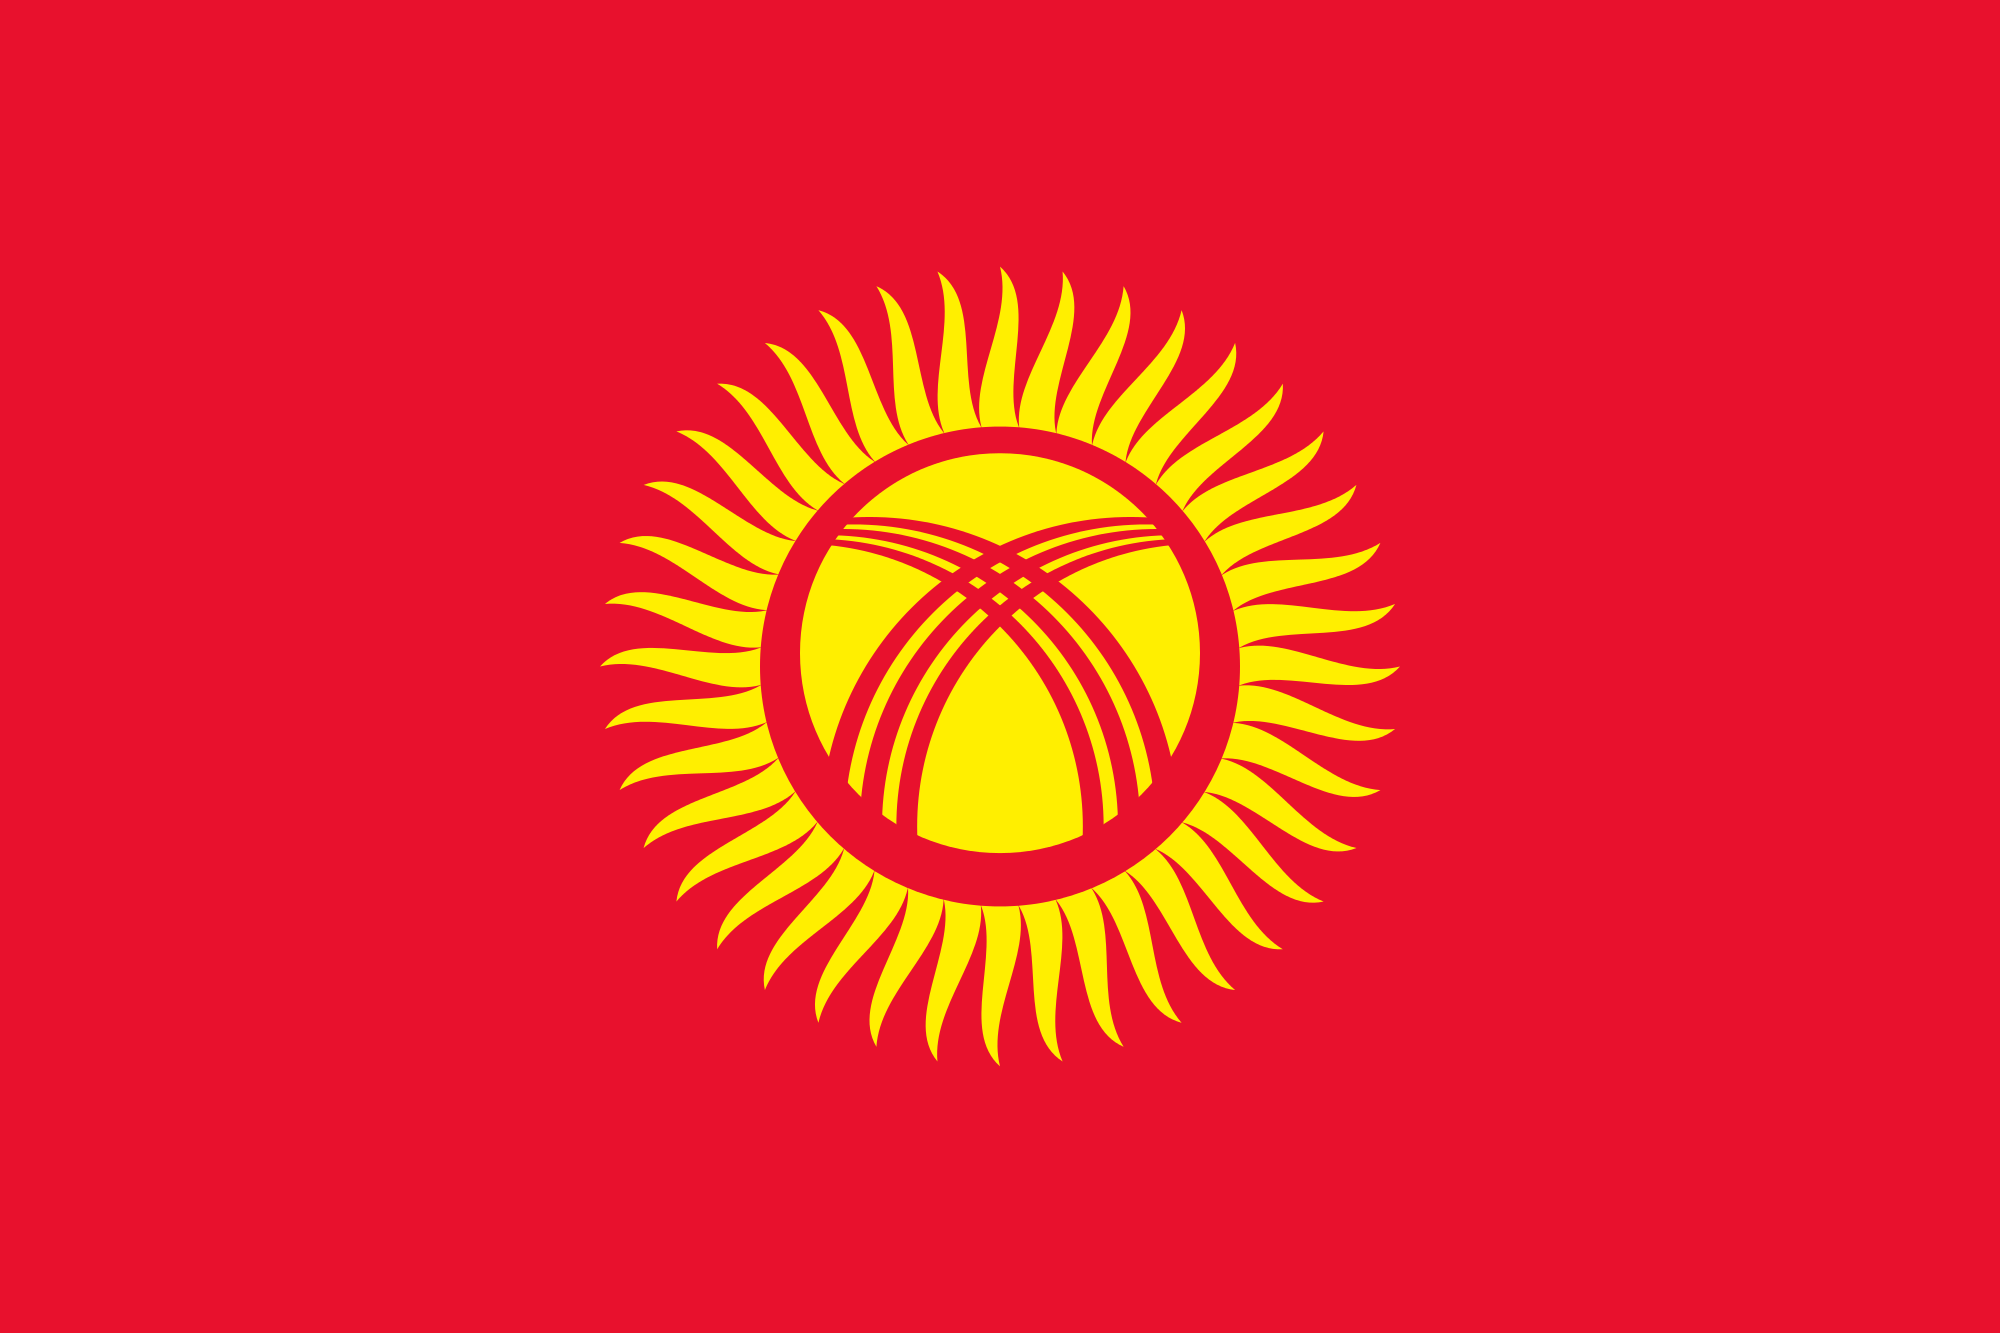 Flag Of Kyrgyzstan Backgrounds, Compatible - PC, Mobile, Gadgets  2000x1333 px